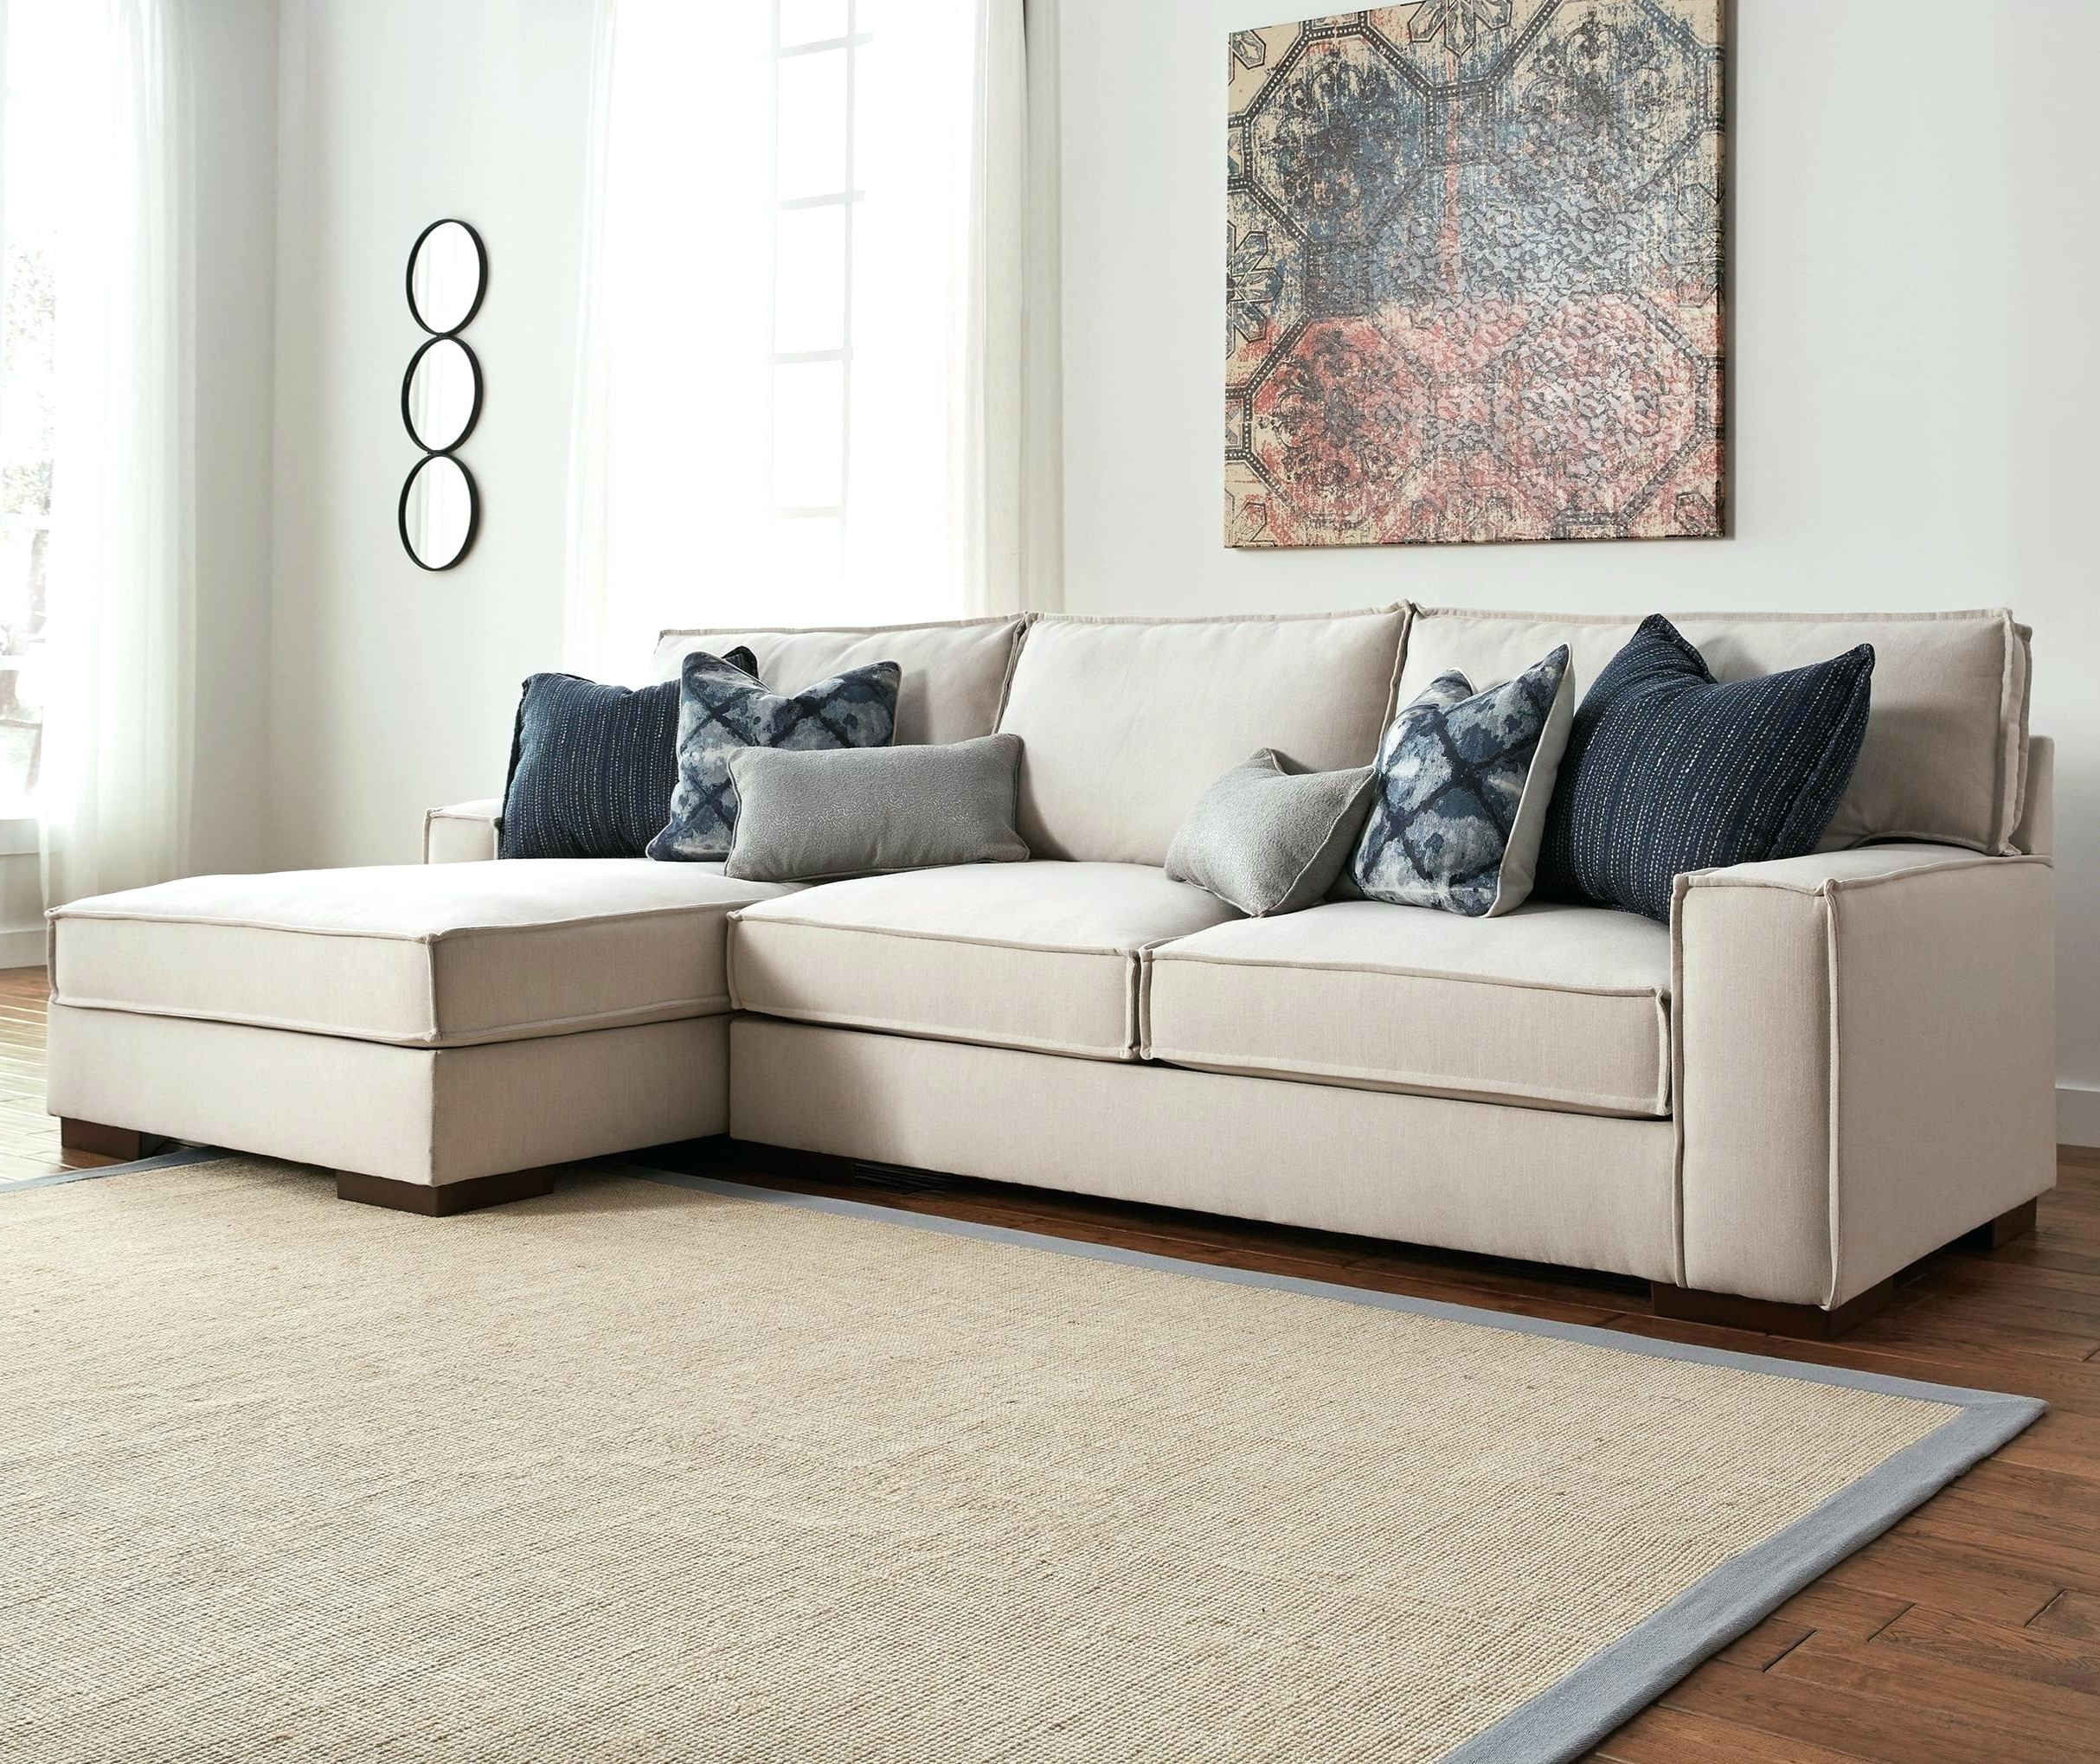 2019 2 Piece Sectional Sofa With Chaise 2 Piece Sectional With Chaise With Jobs Oat 2 Piece Sectionals With Left Facing Chaise (View 3 of 20)